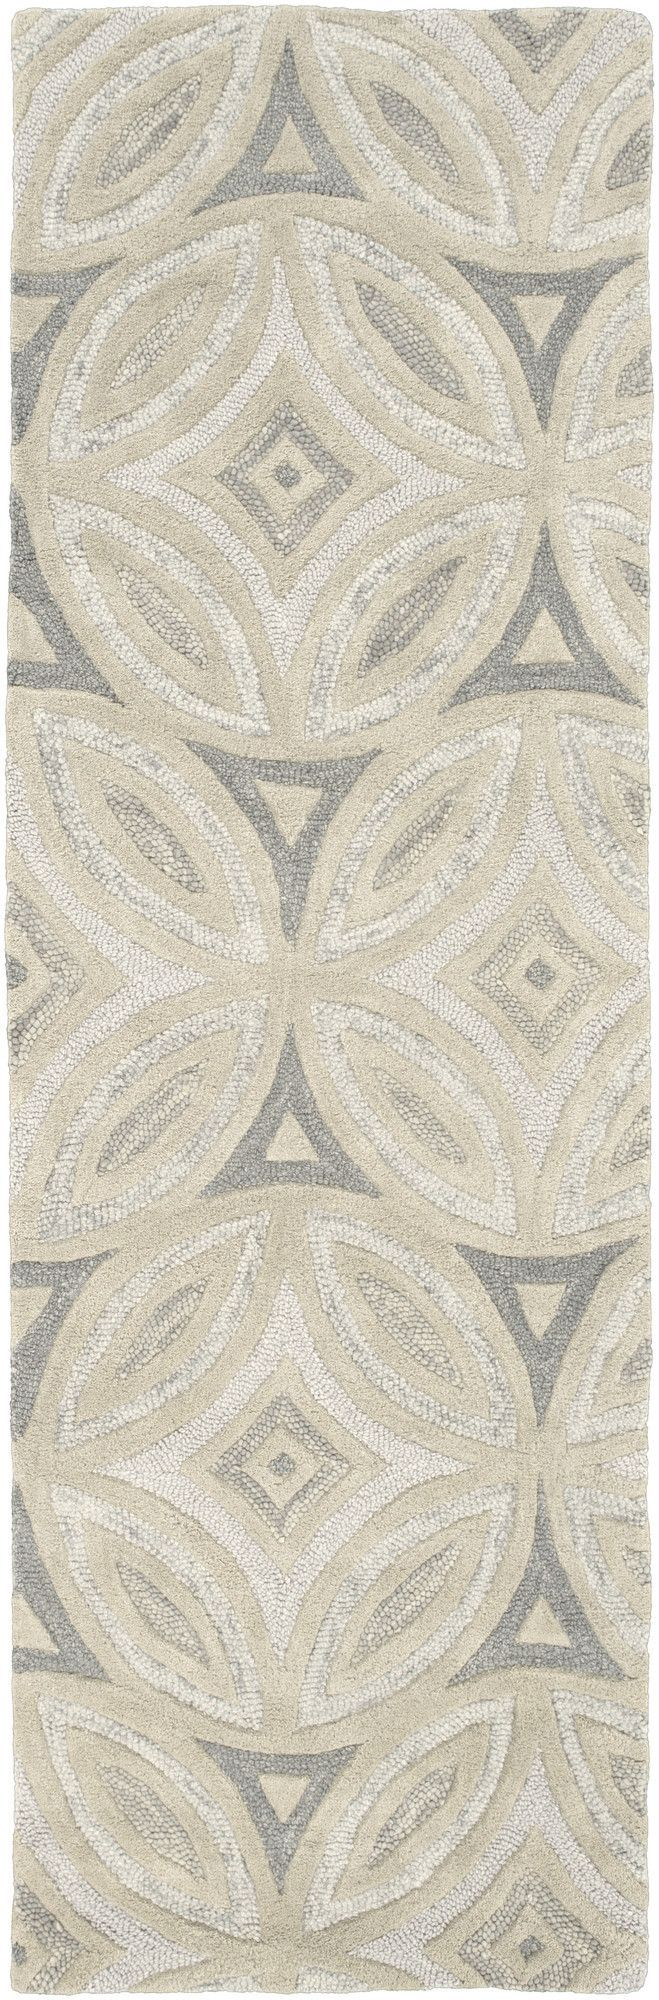 Perspective Beige/Light Gray Geometric Area Rug